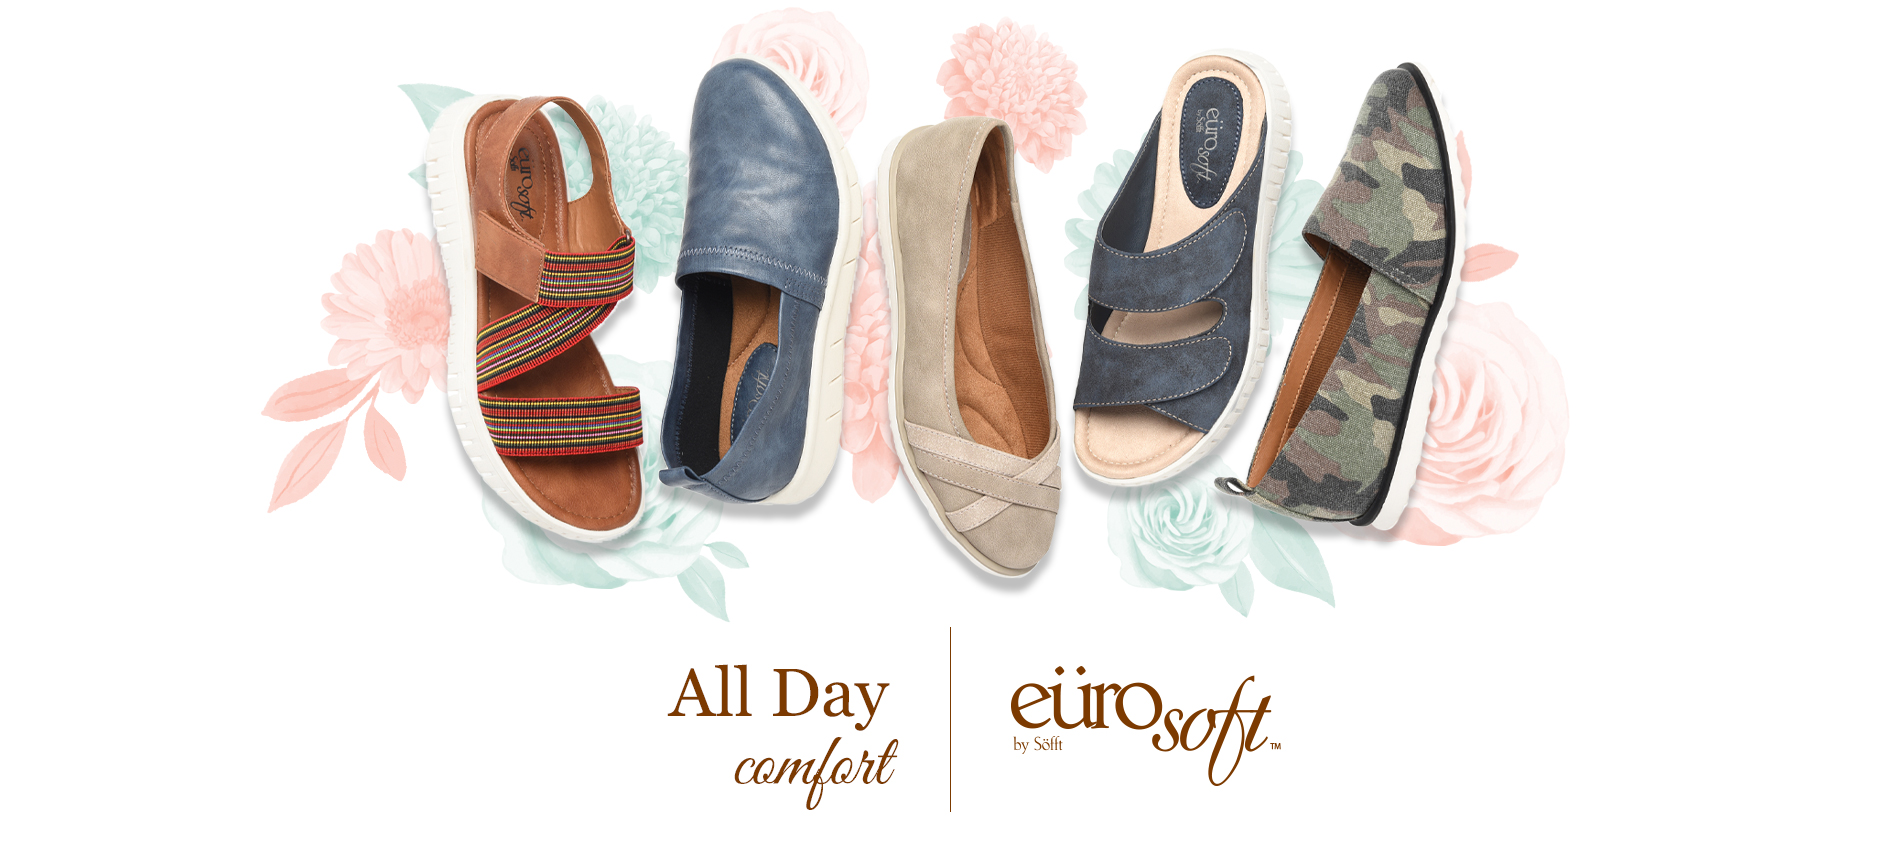 All day comfort. Eurosoft by Sofft. Shop All Styles